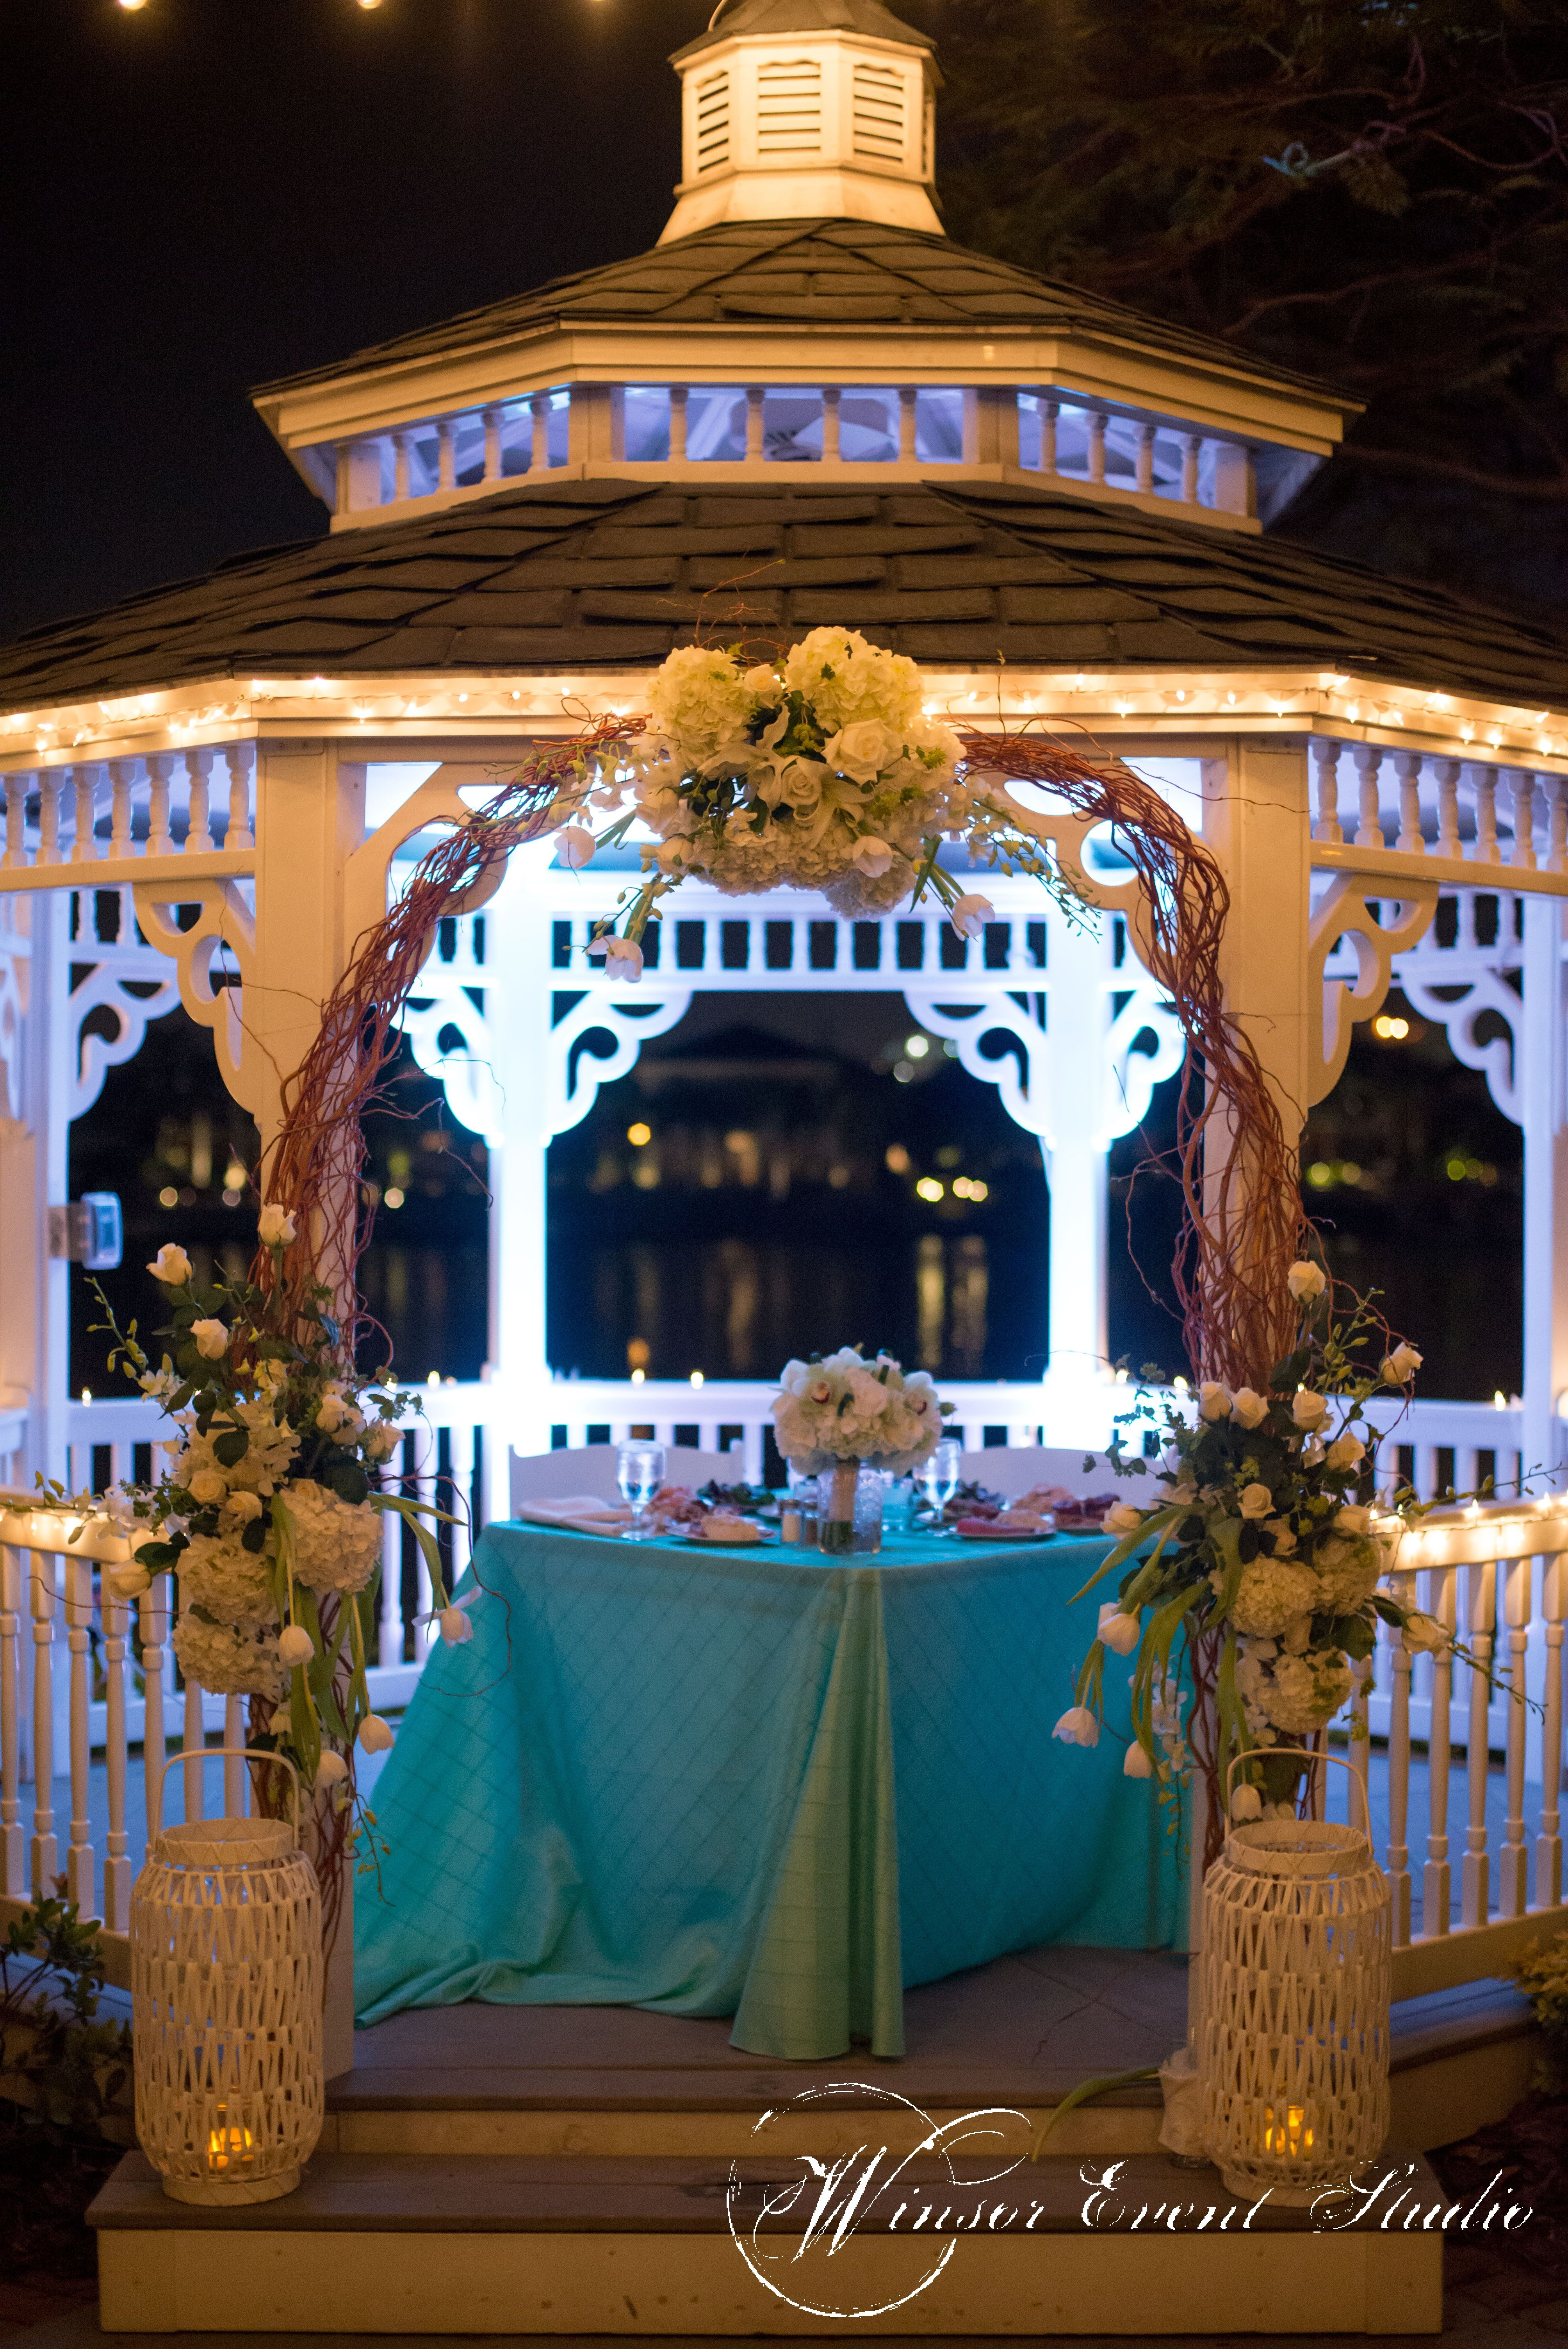 Sweetheart table placed inside the waterfront gazebo at Davis Islands Garden Club, adorned with curly willow branches and clusters of white flowers